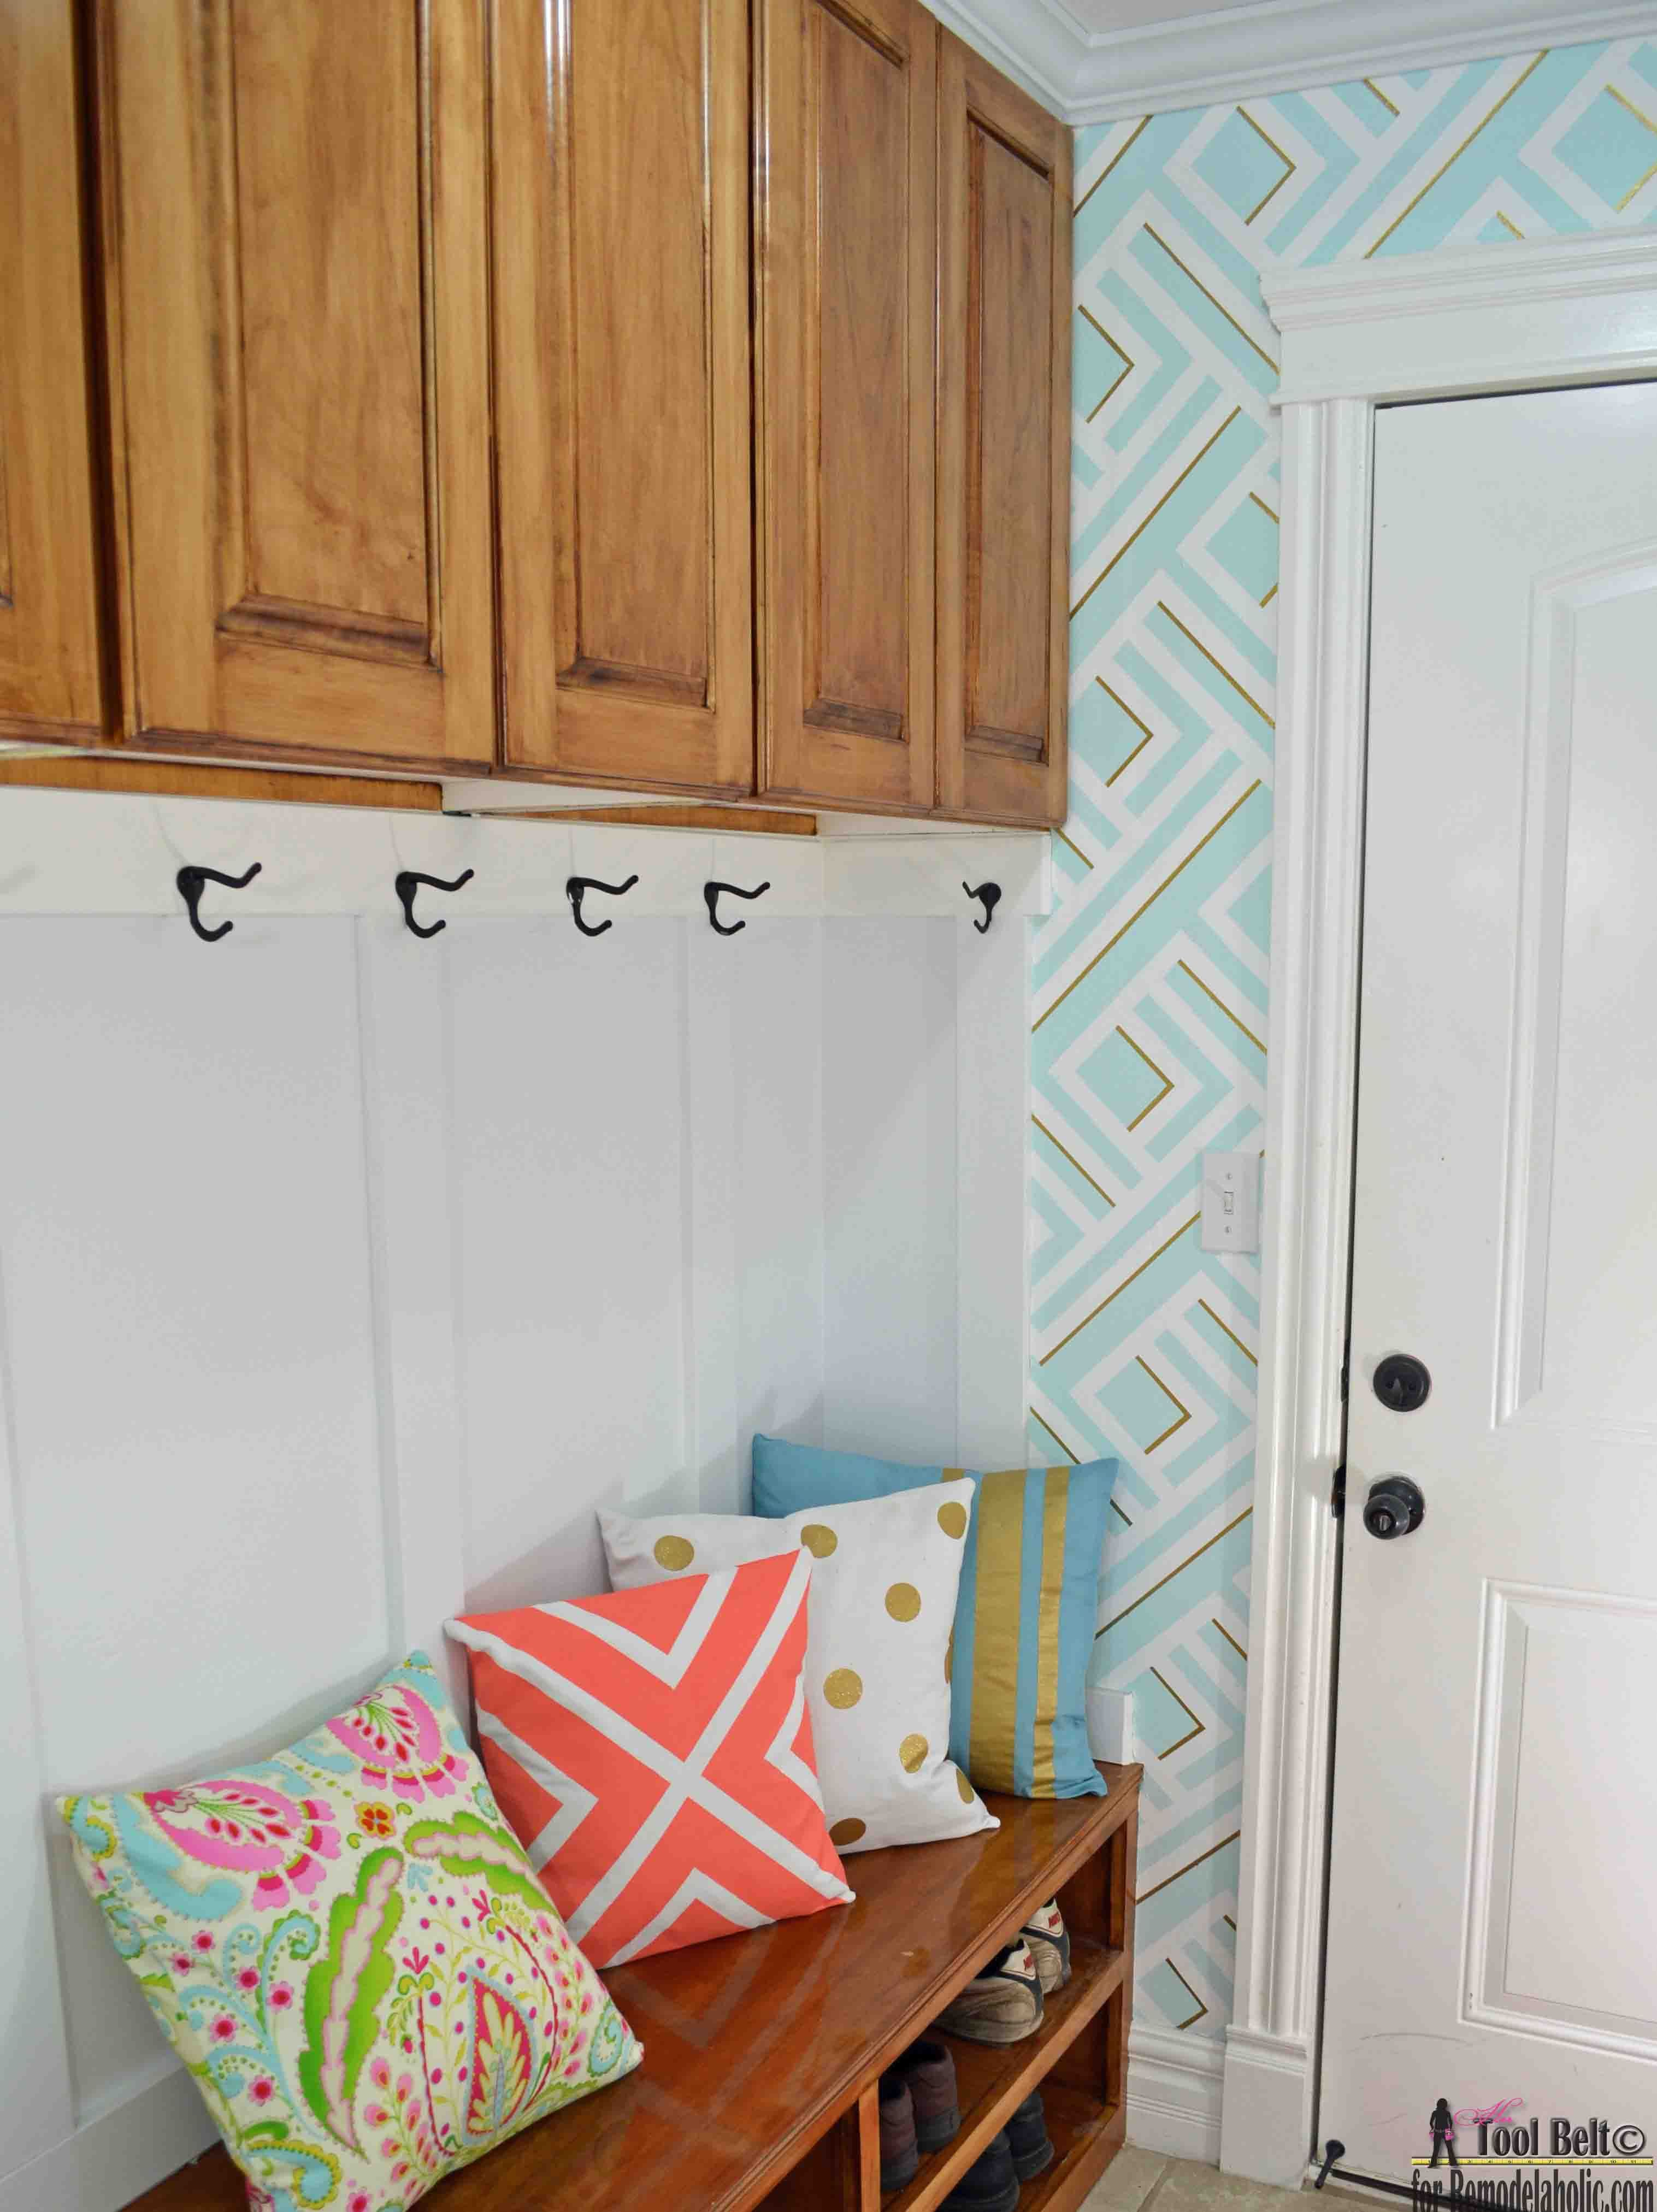 Build your own custom raised panel cabinet doors for your ...